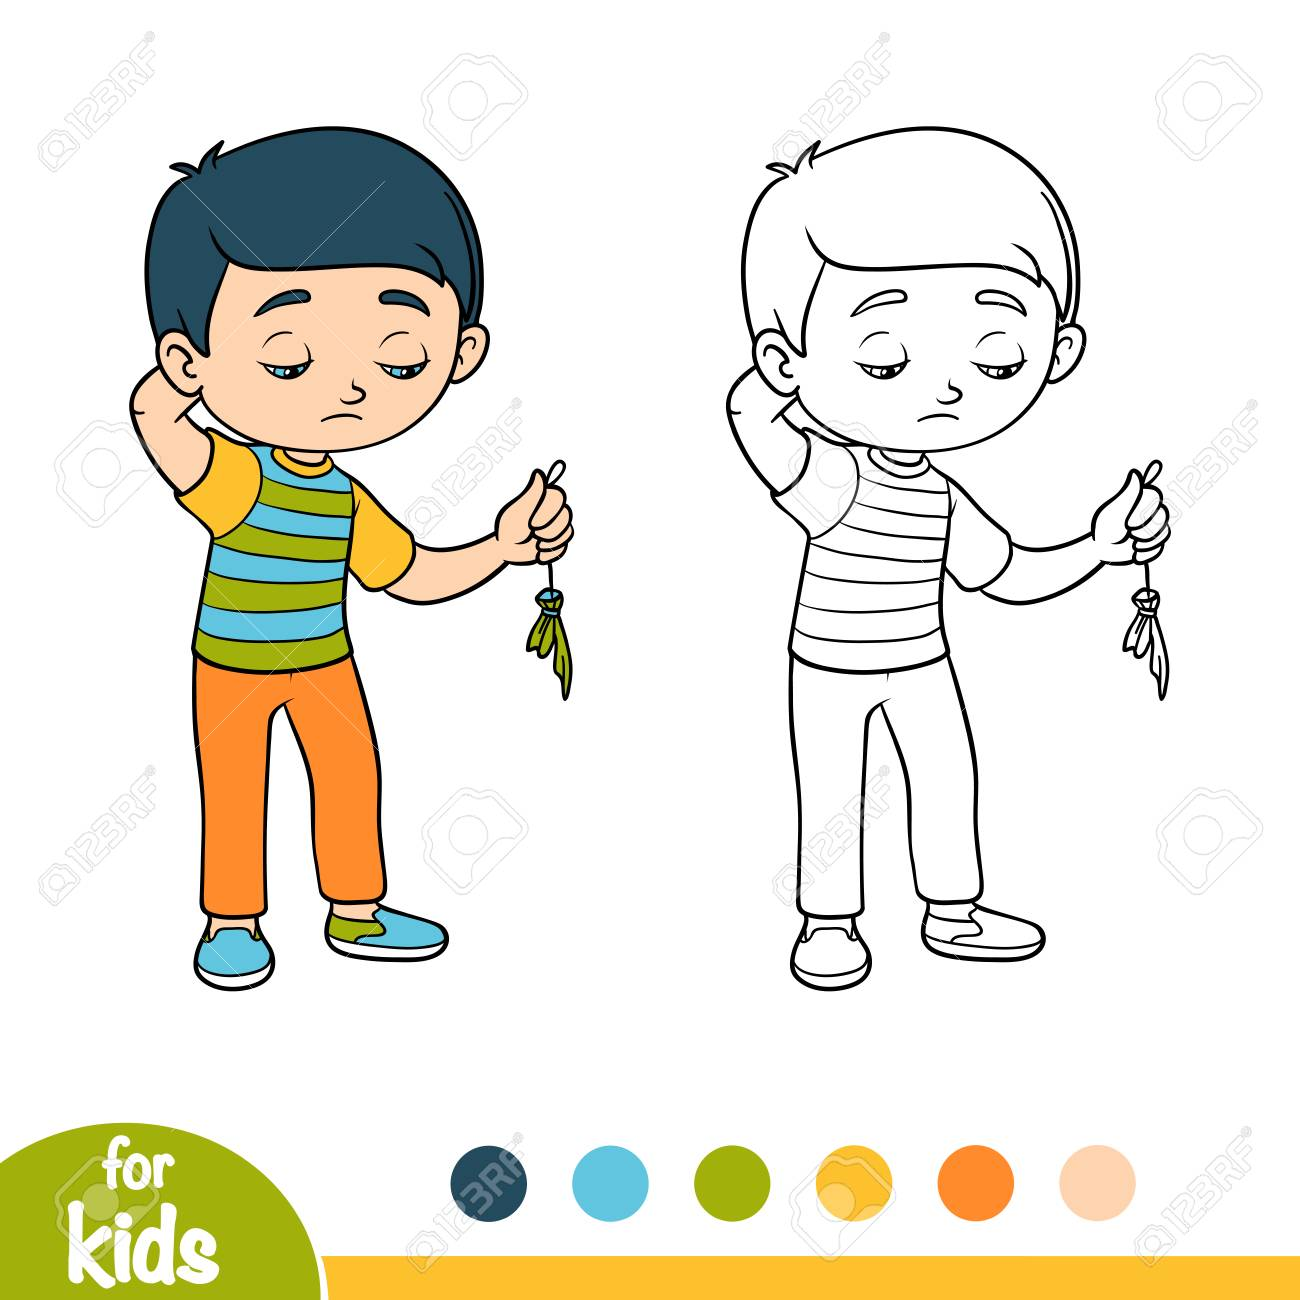 Coloring Book For Children, Sad Boy Hold Burst Balloon Royalty Free ...